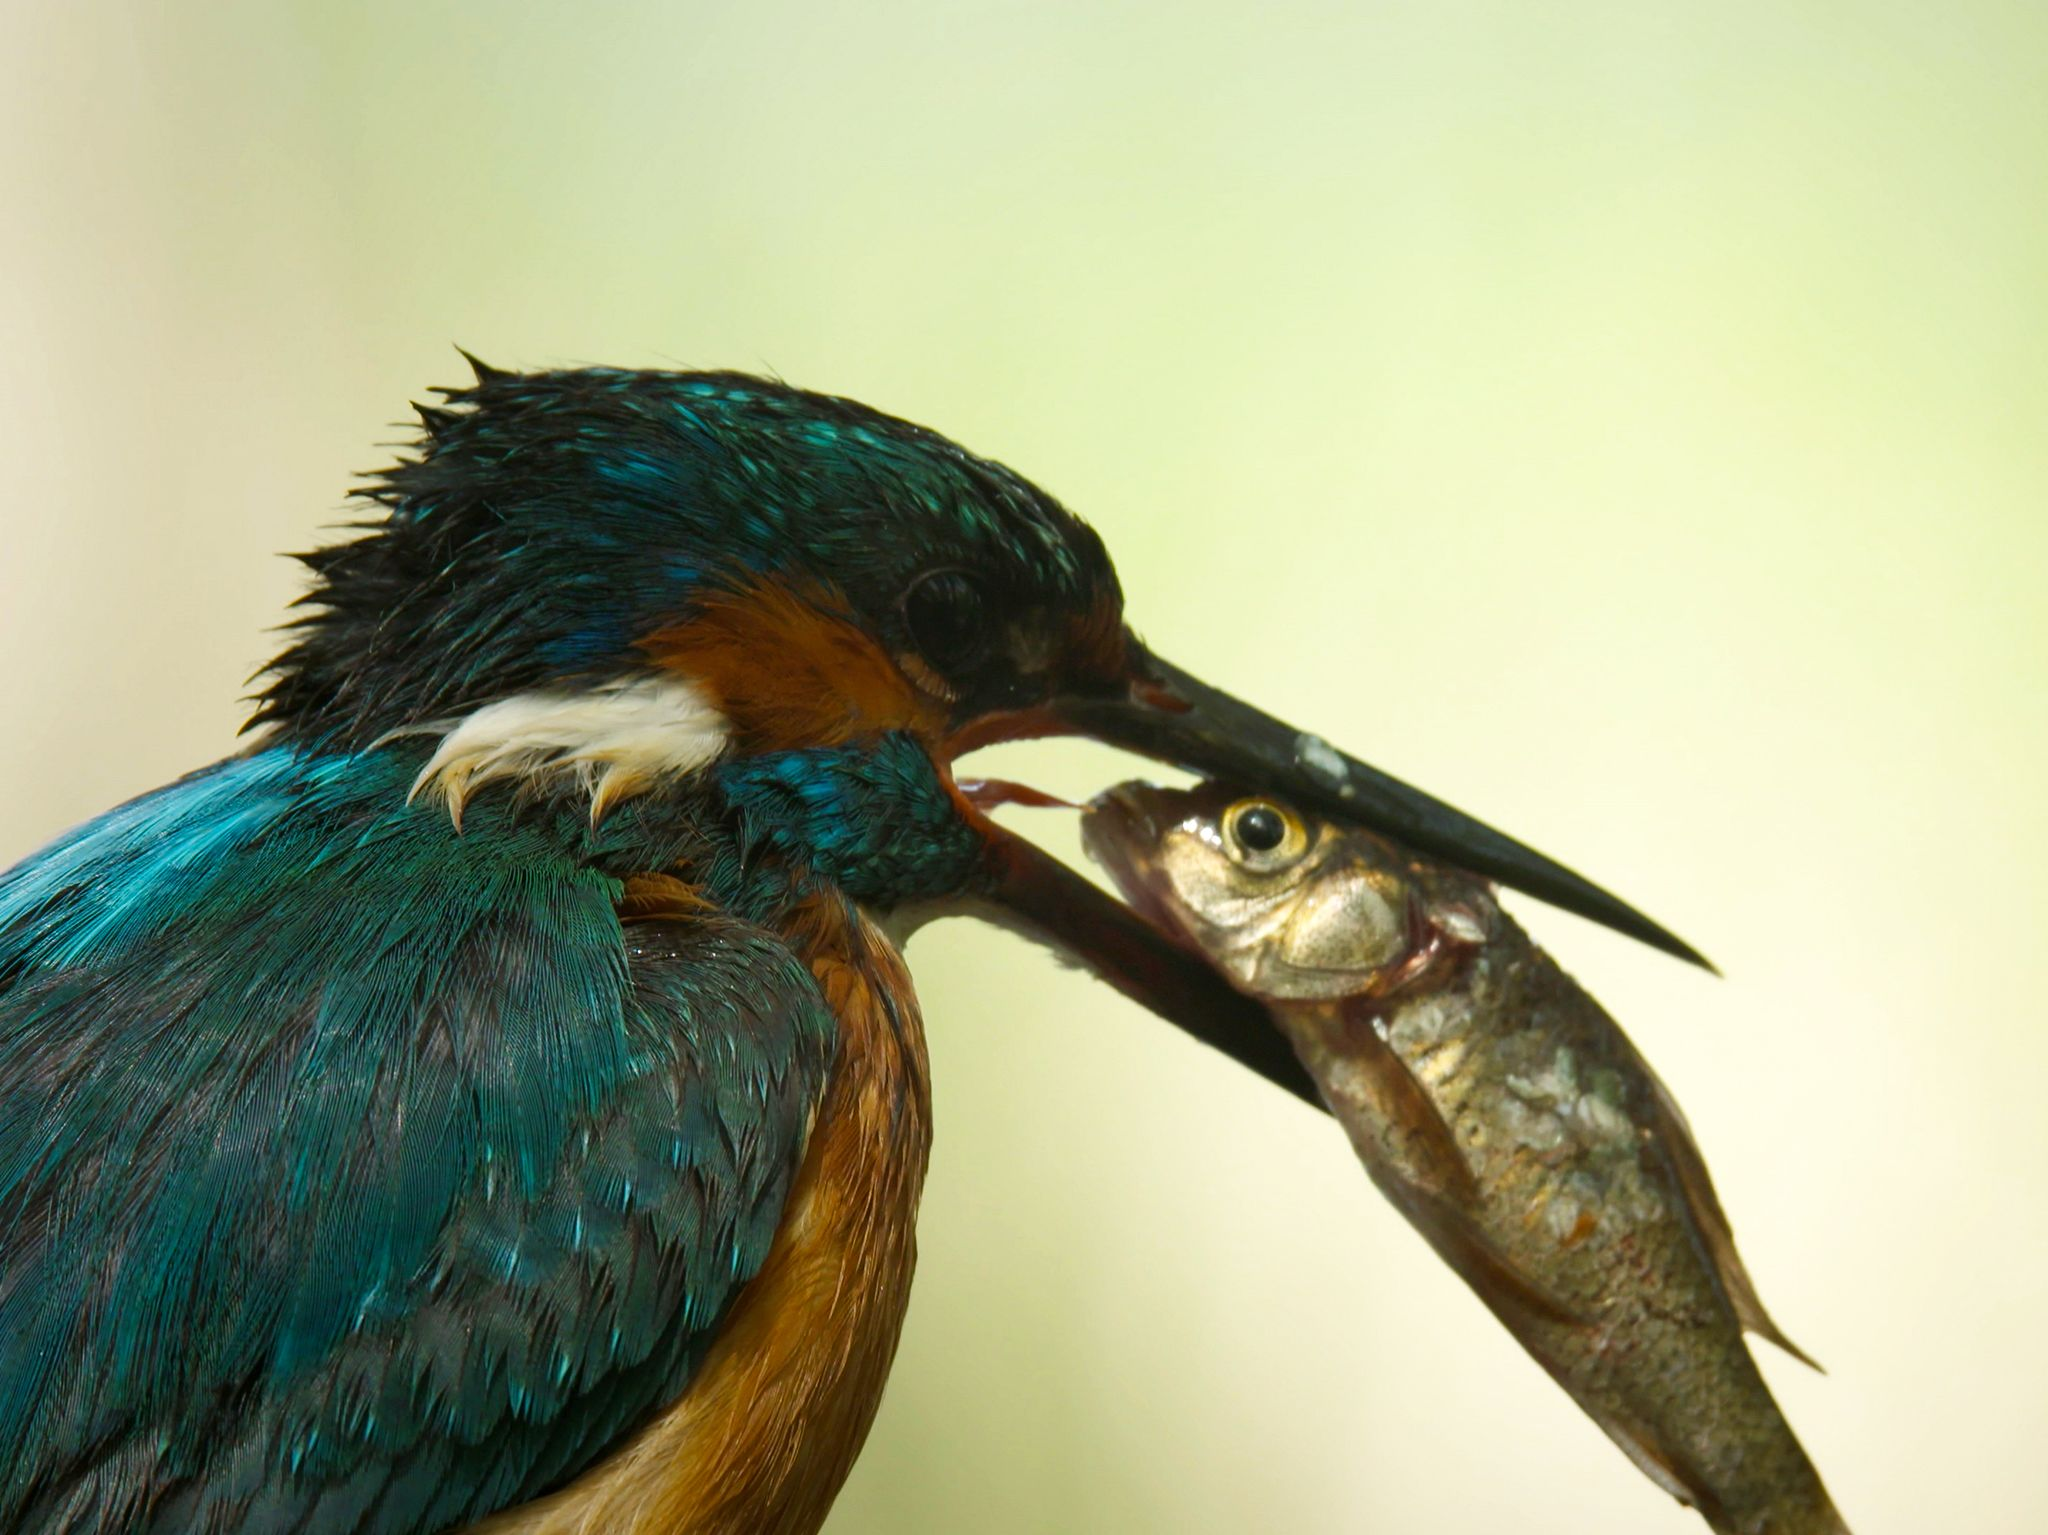 A close up of a Kingfisher after having caught its prey (a trout) with its beak. This image is... [Photo of the day - May 2019]